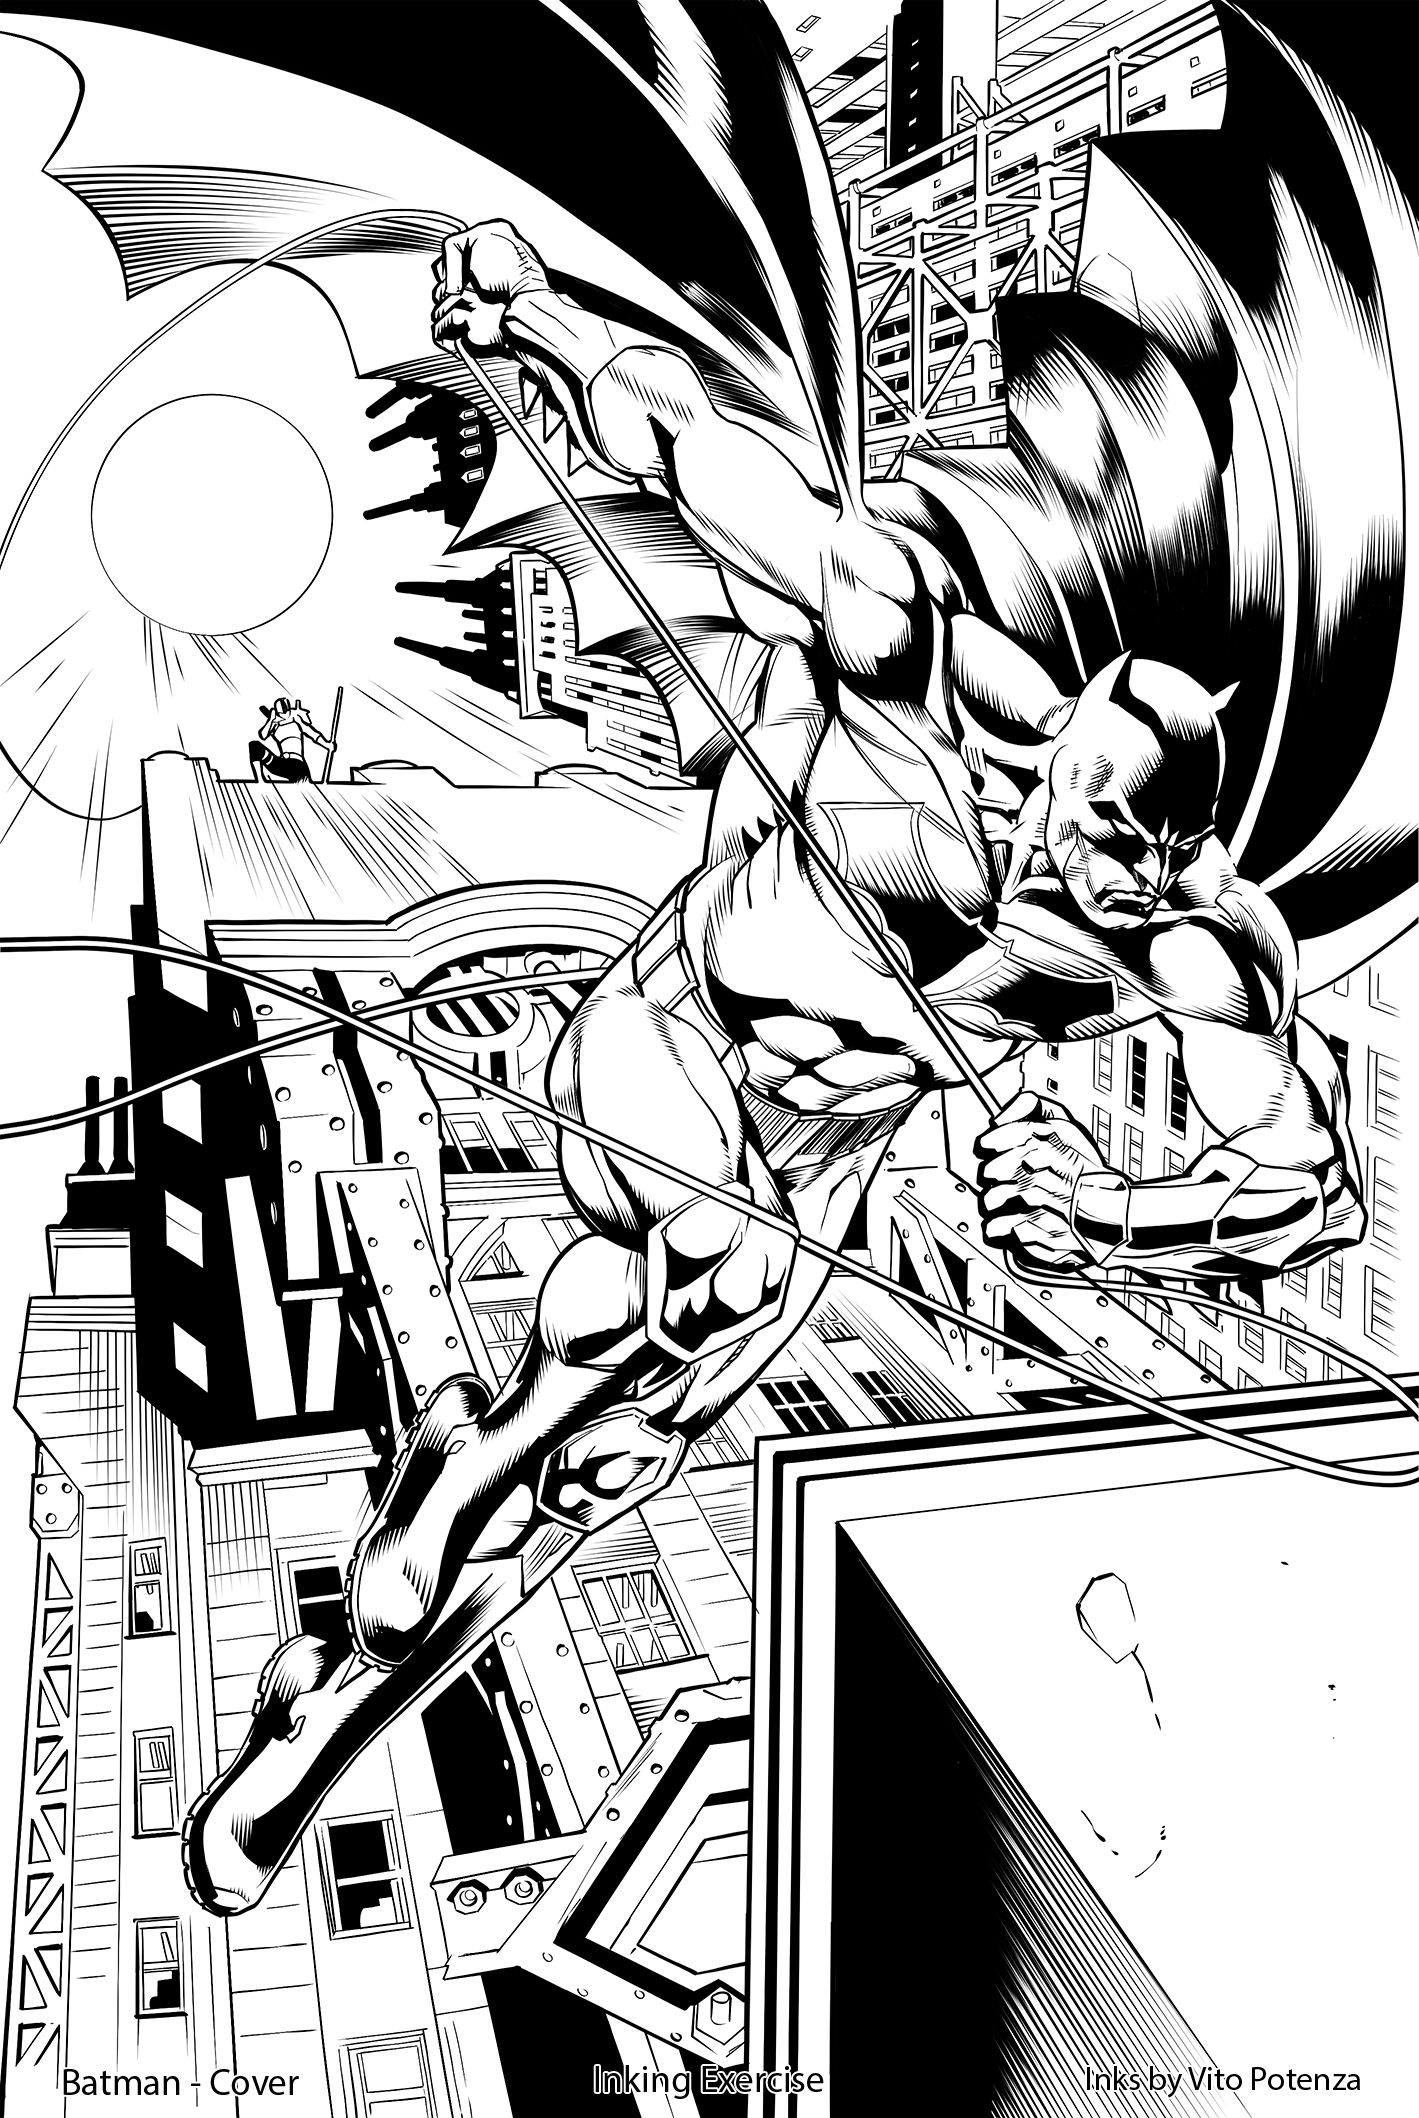 Batman, Cover – Inking Exercise